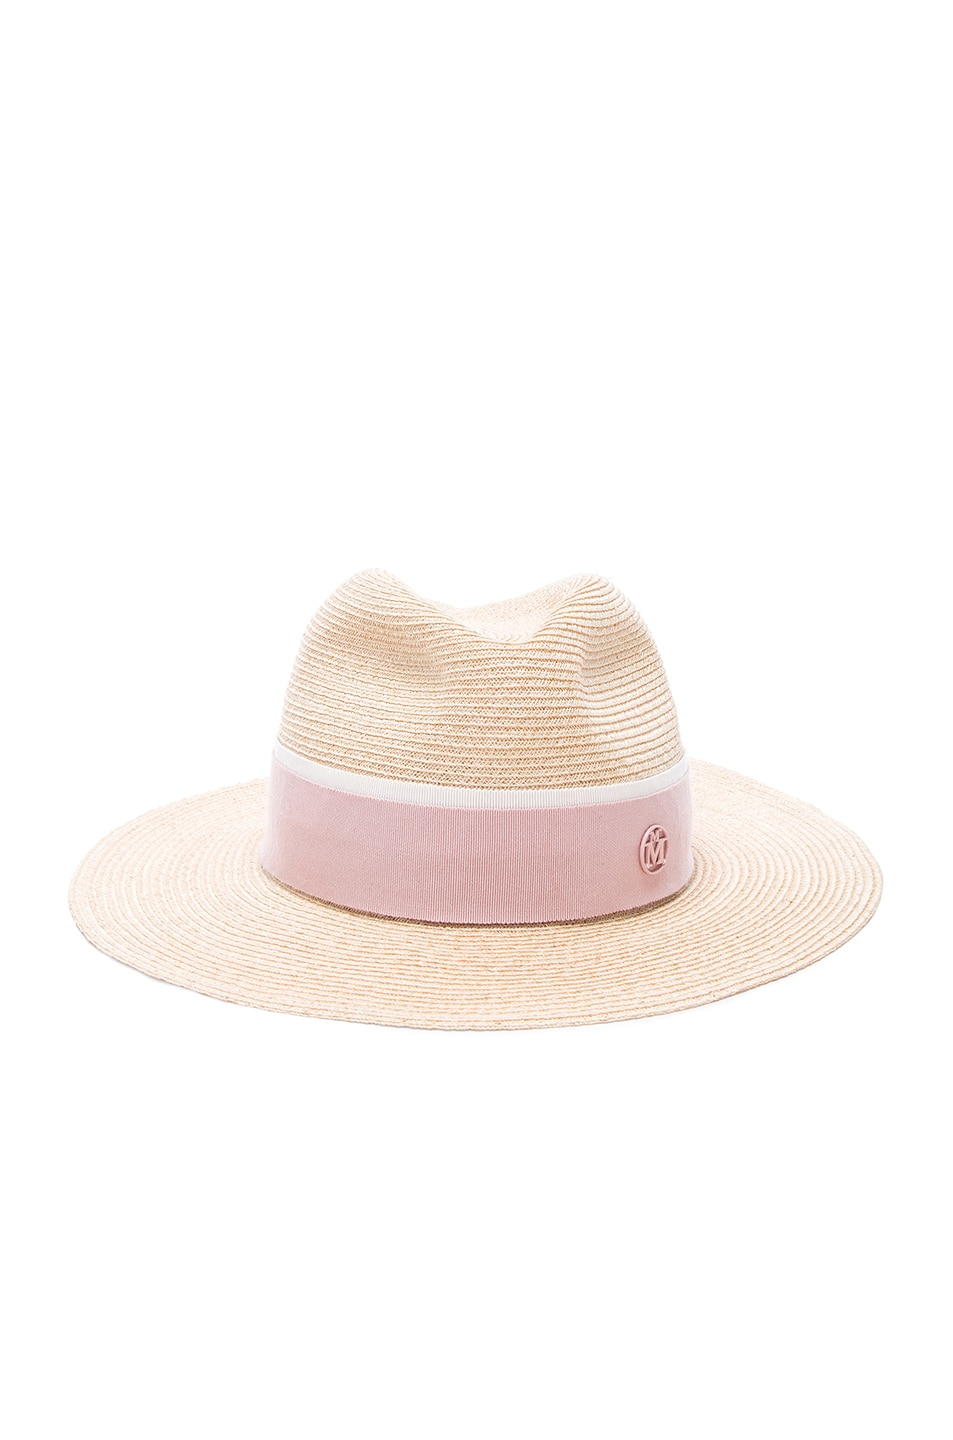 Maison Michel Henrietta Timeless Straw Hat With Thin Canapa In Brown